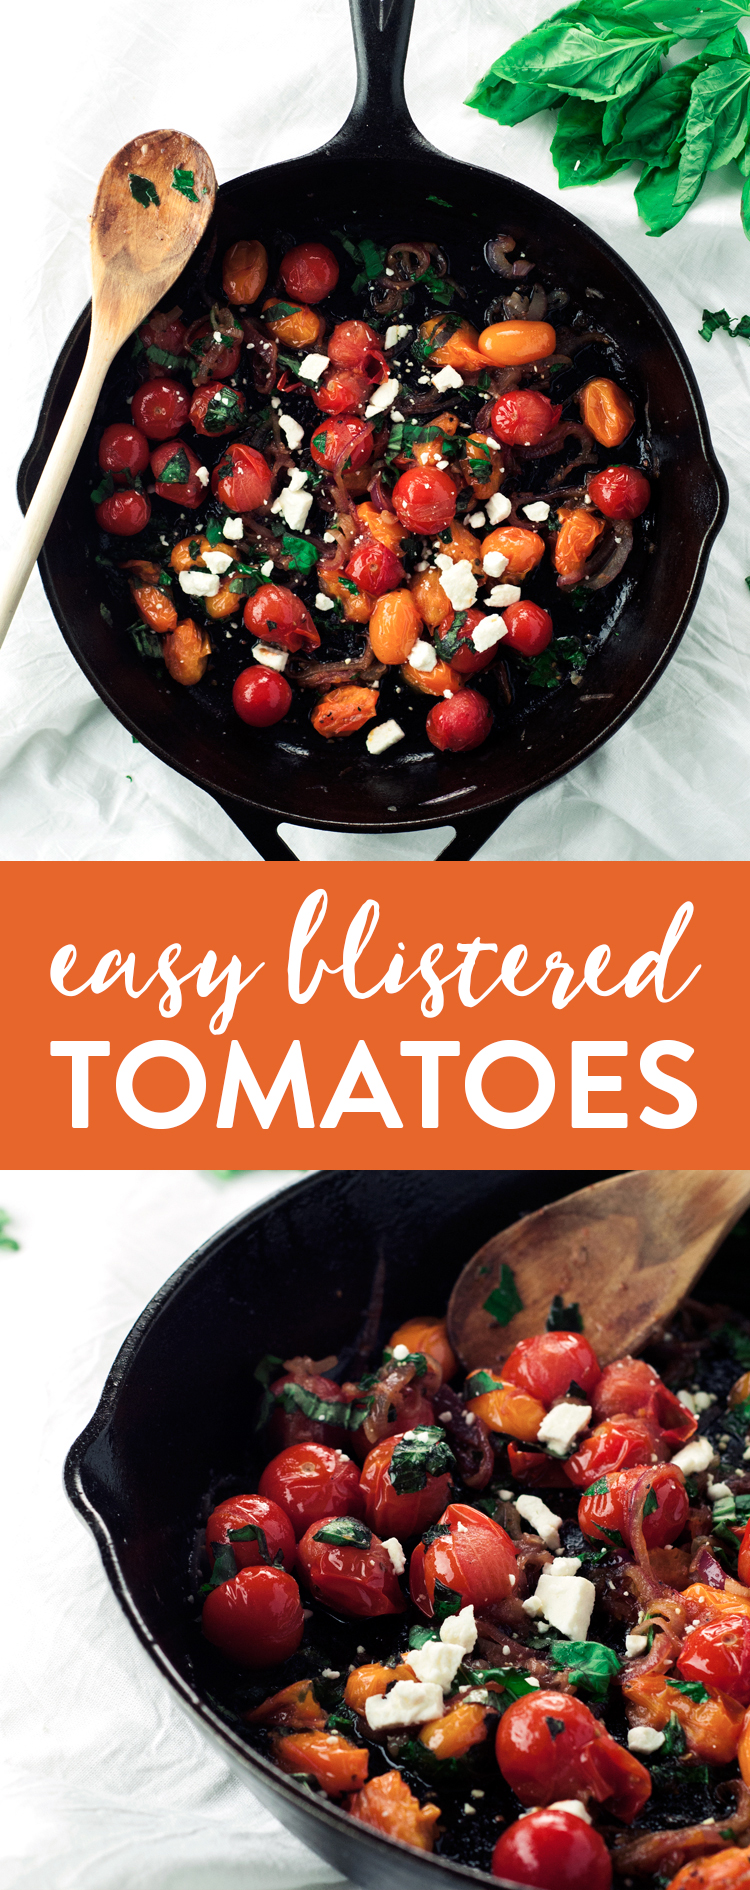 The simplest side dish around, this easy blistered tomatoes recipe will quickly become your go-to for dinnertime success! | asimplepantry.com